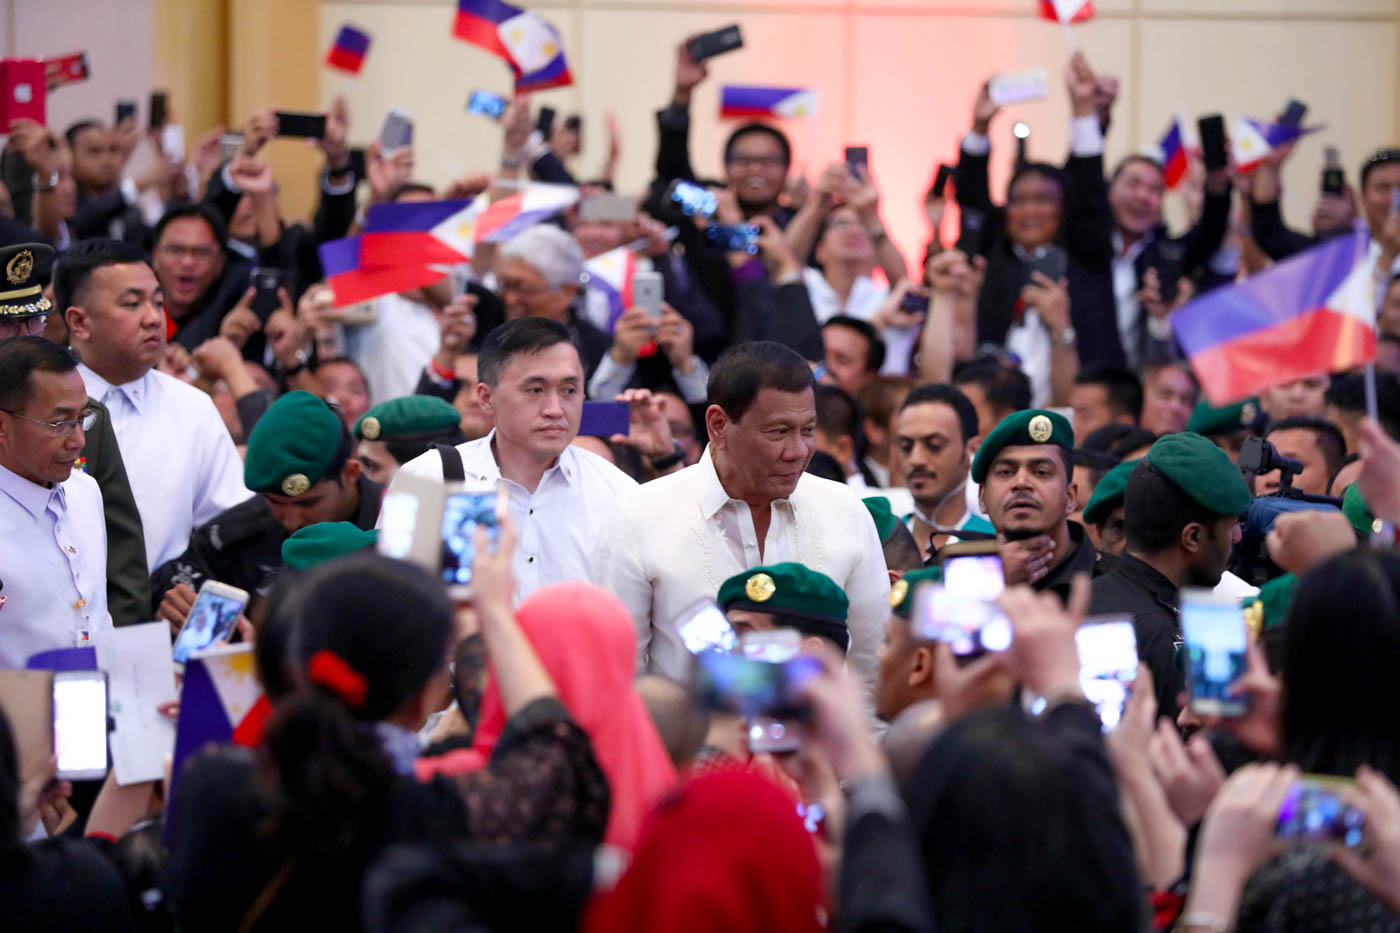 OFW SUPPORT. OFWs in Saudi Arabia welcome President Rodrigo Duterte during his visit to the Middle Eastern country. Presidential photo